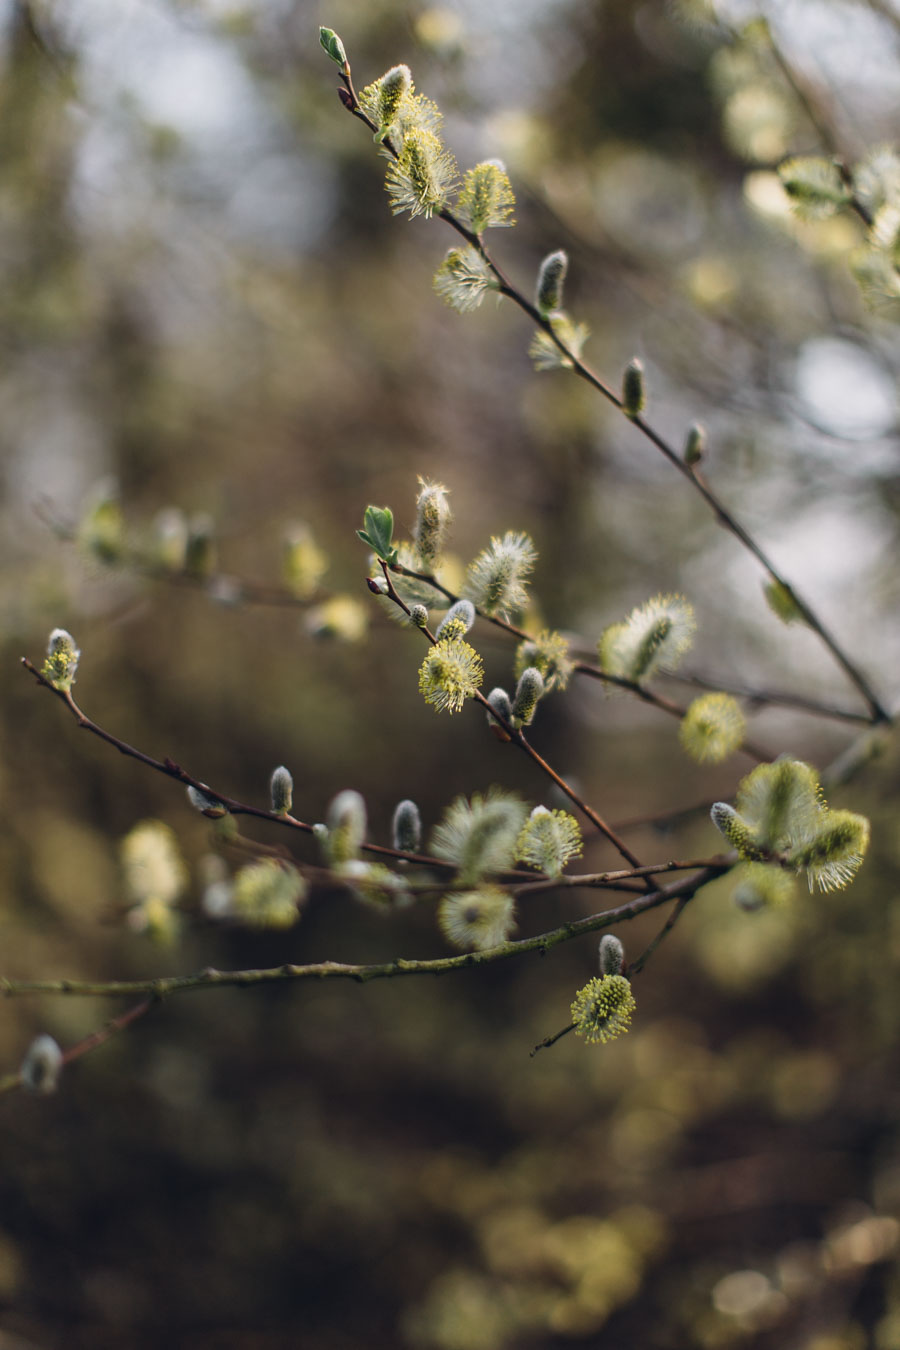 Spring catkins and buds